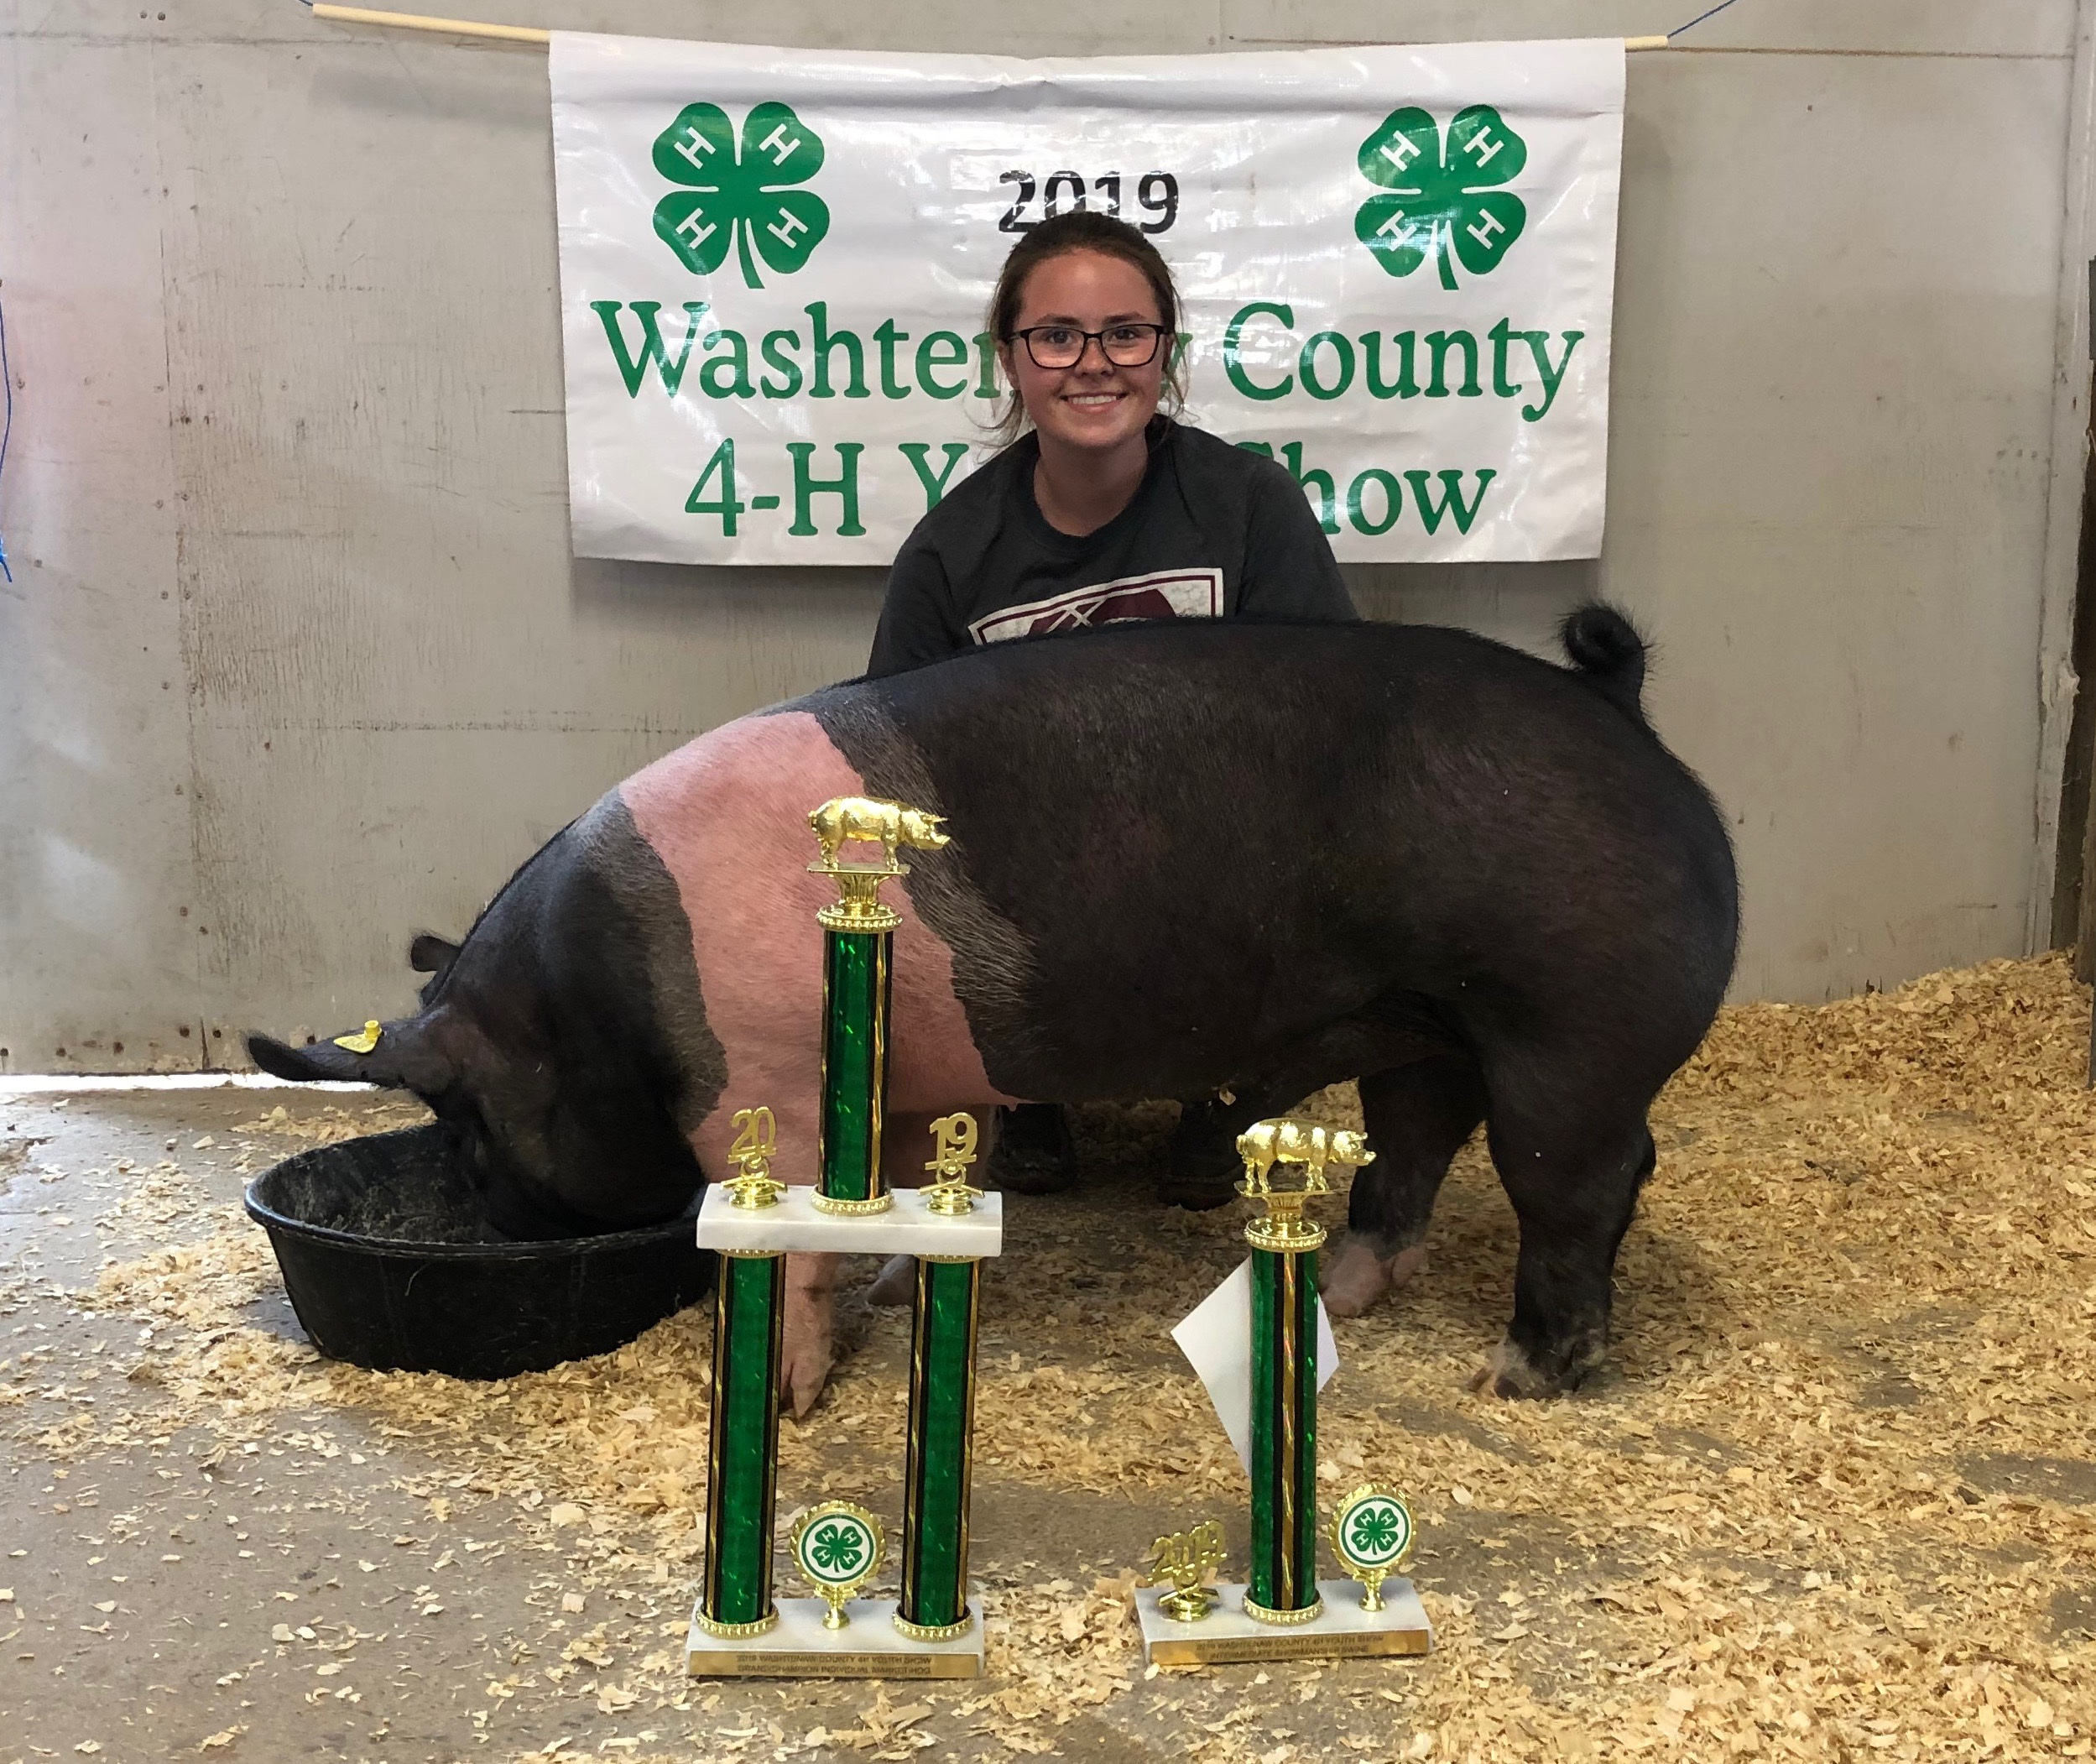 2019 Washtenaw County Fair, Grand Champion Market Hog, Sired by Keg Stand